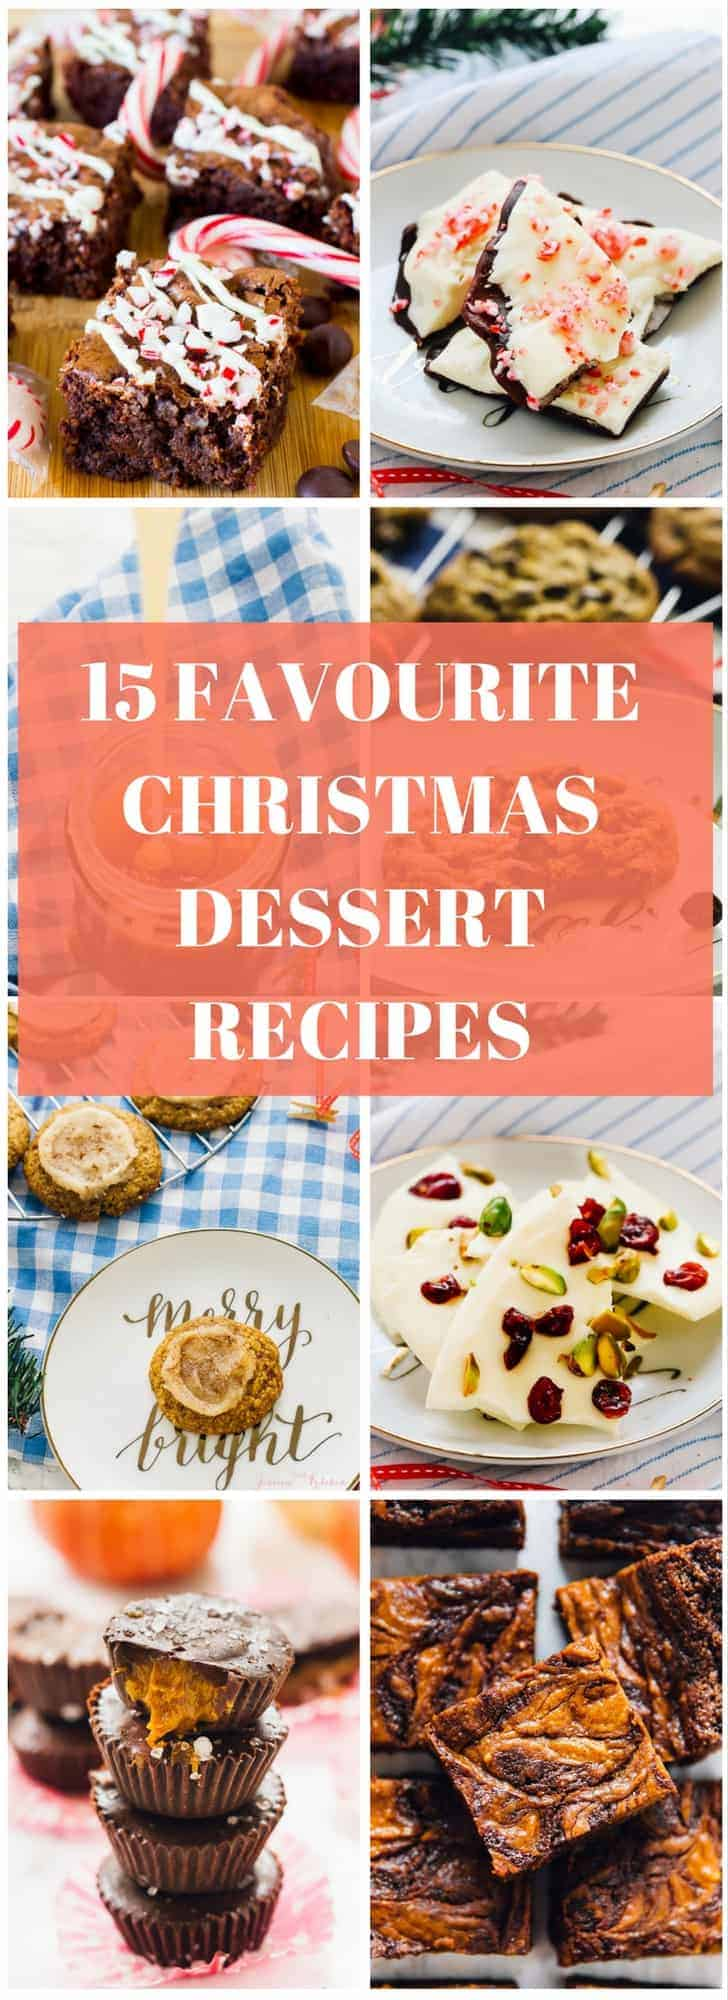 A montage of christmas desserts with text over it.